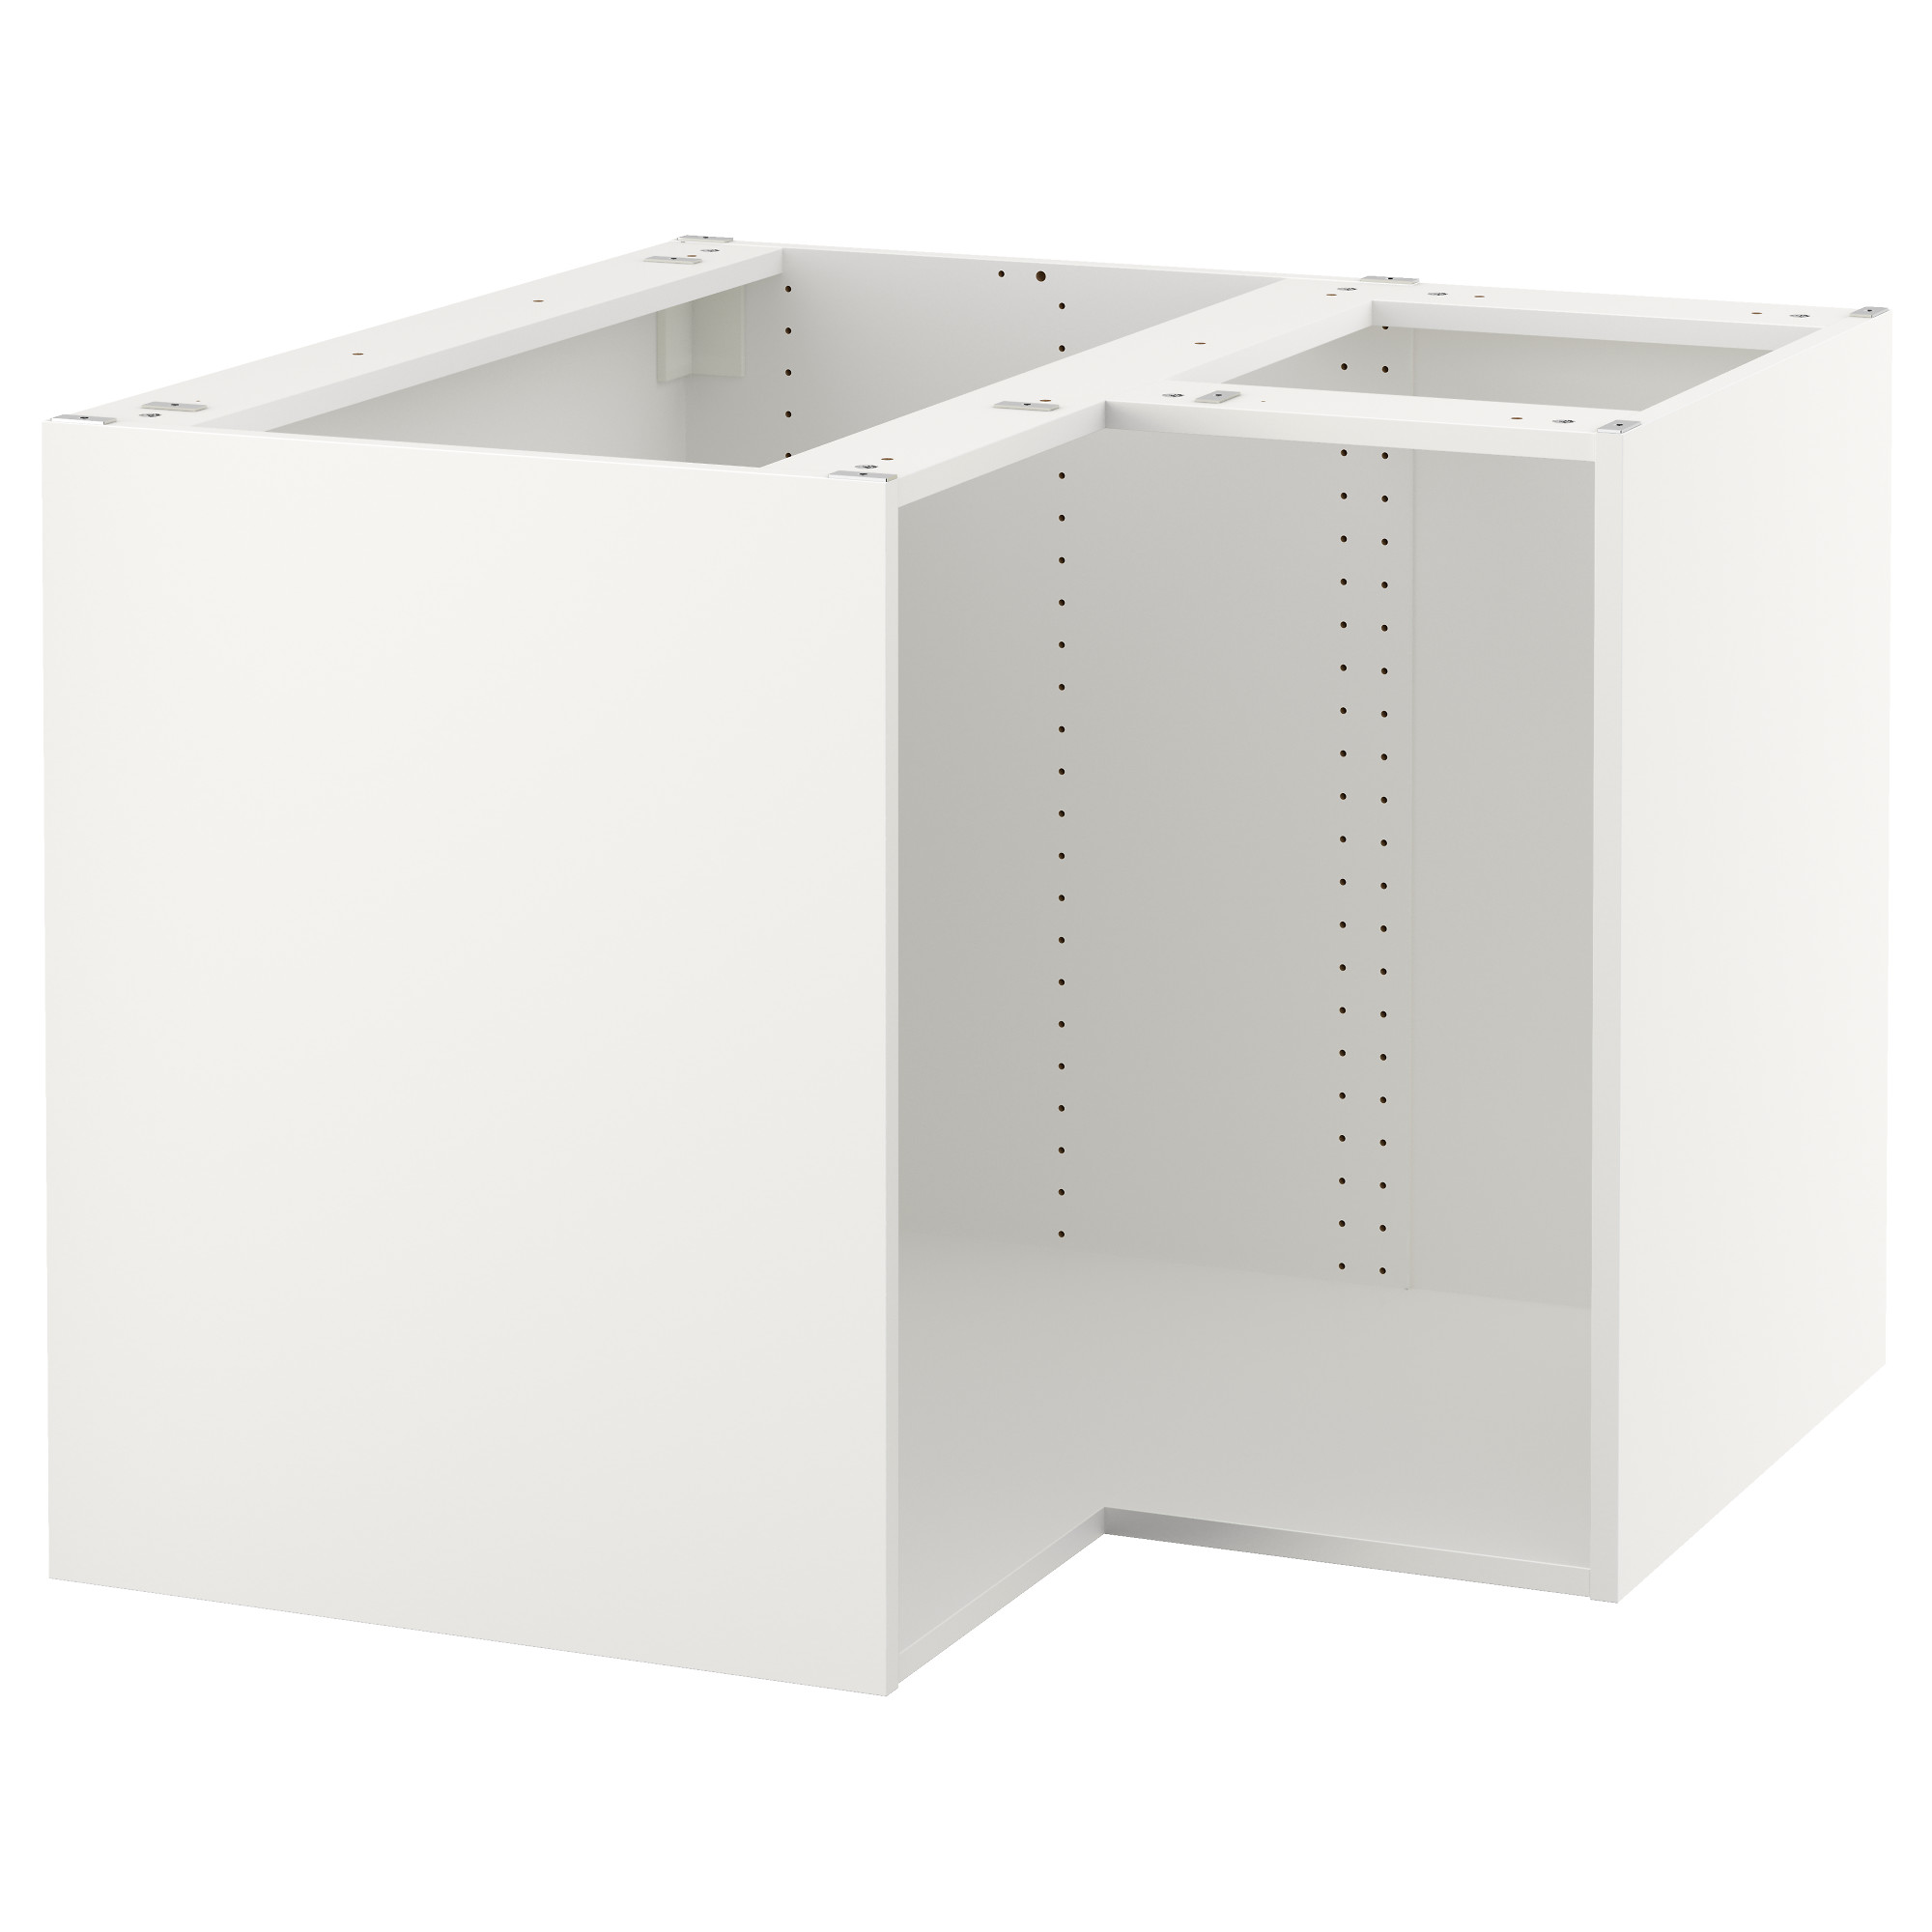 SEKTION base corner cabinet frame, white Depth without suspension rail: 37  3/4